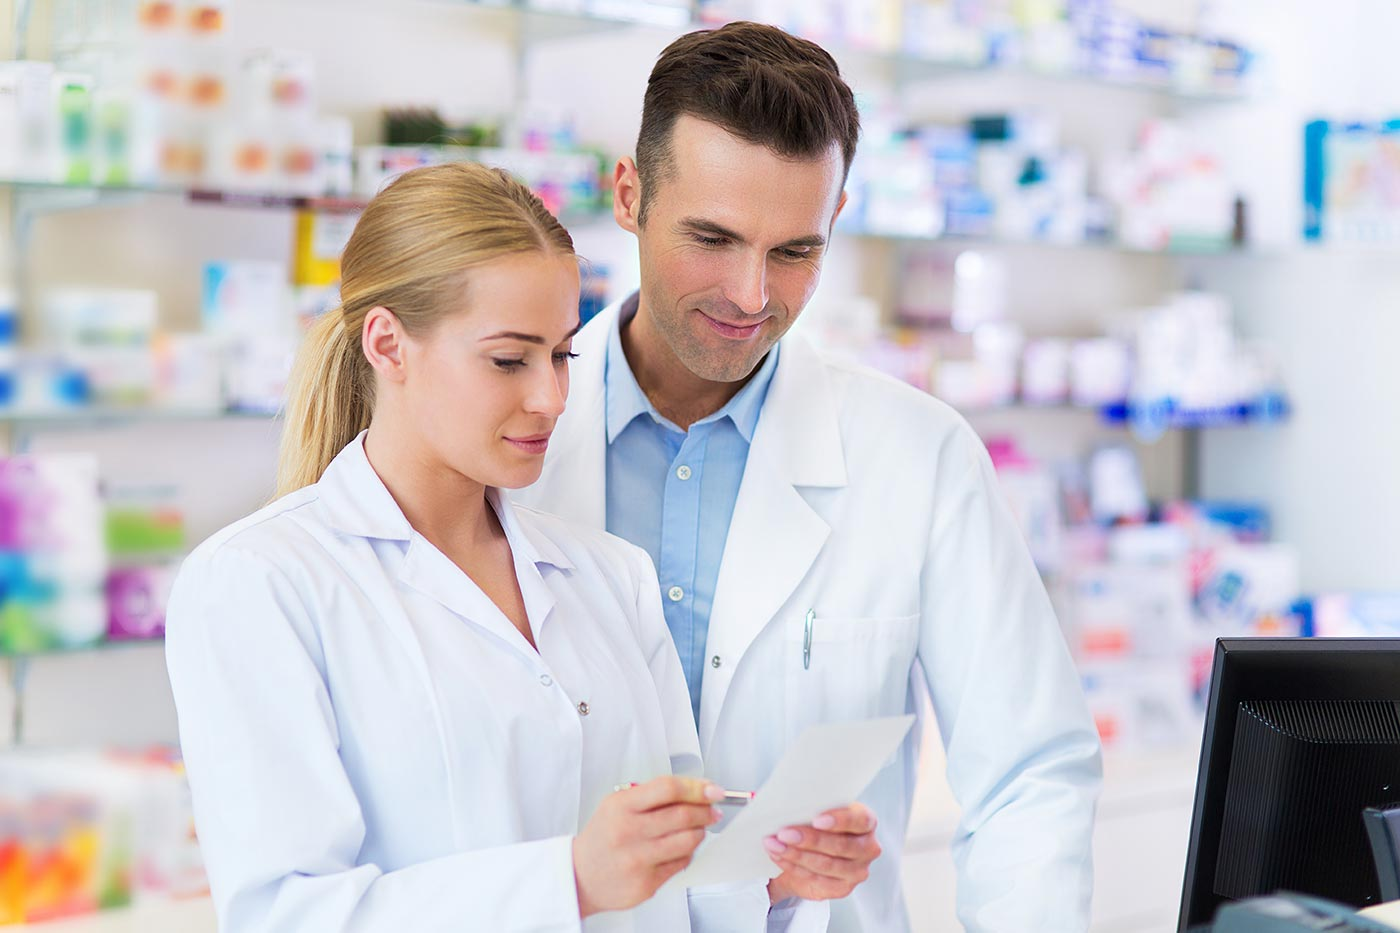 Man and woman in lab coats review piece of paper.